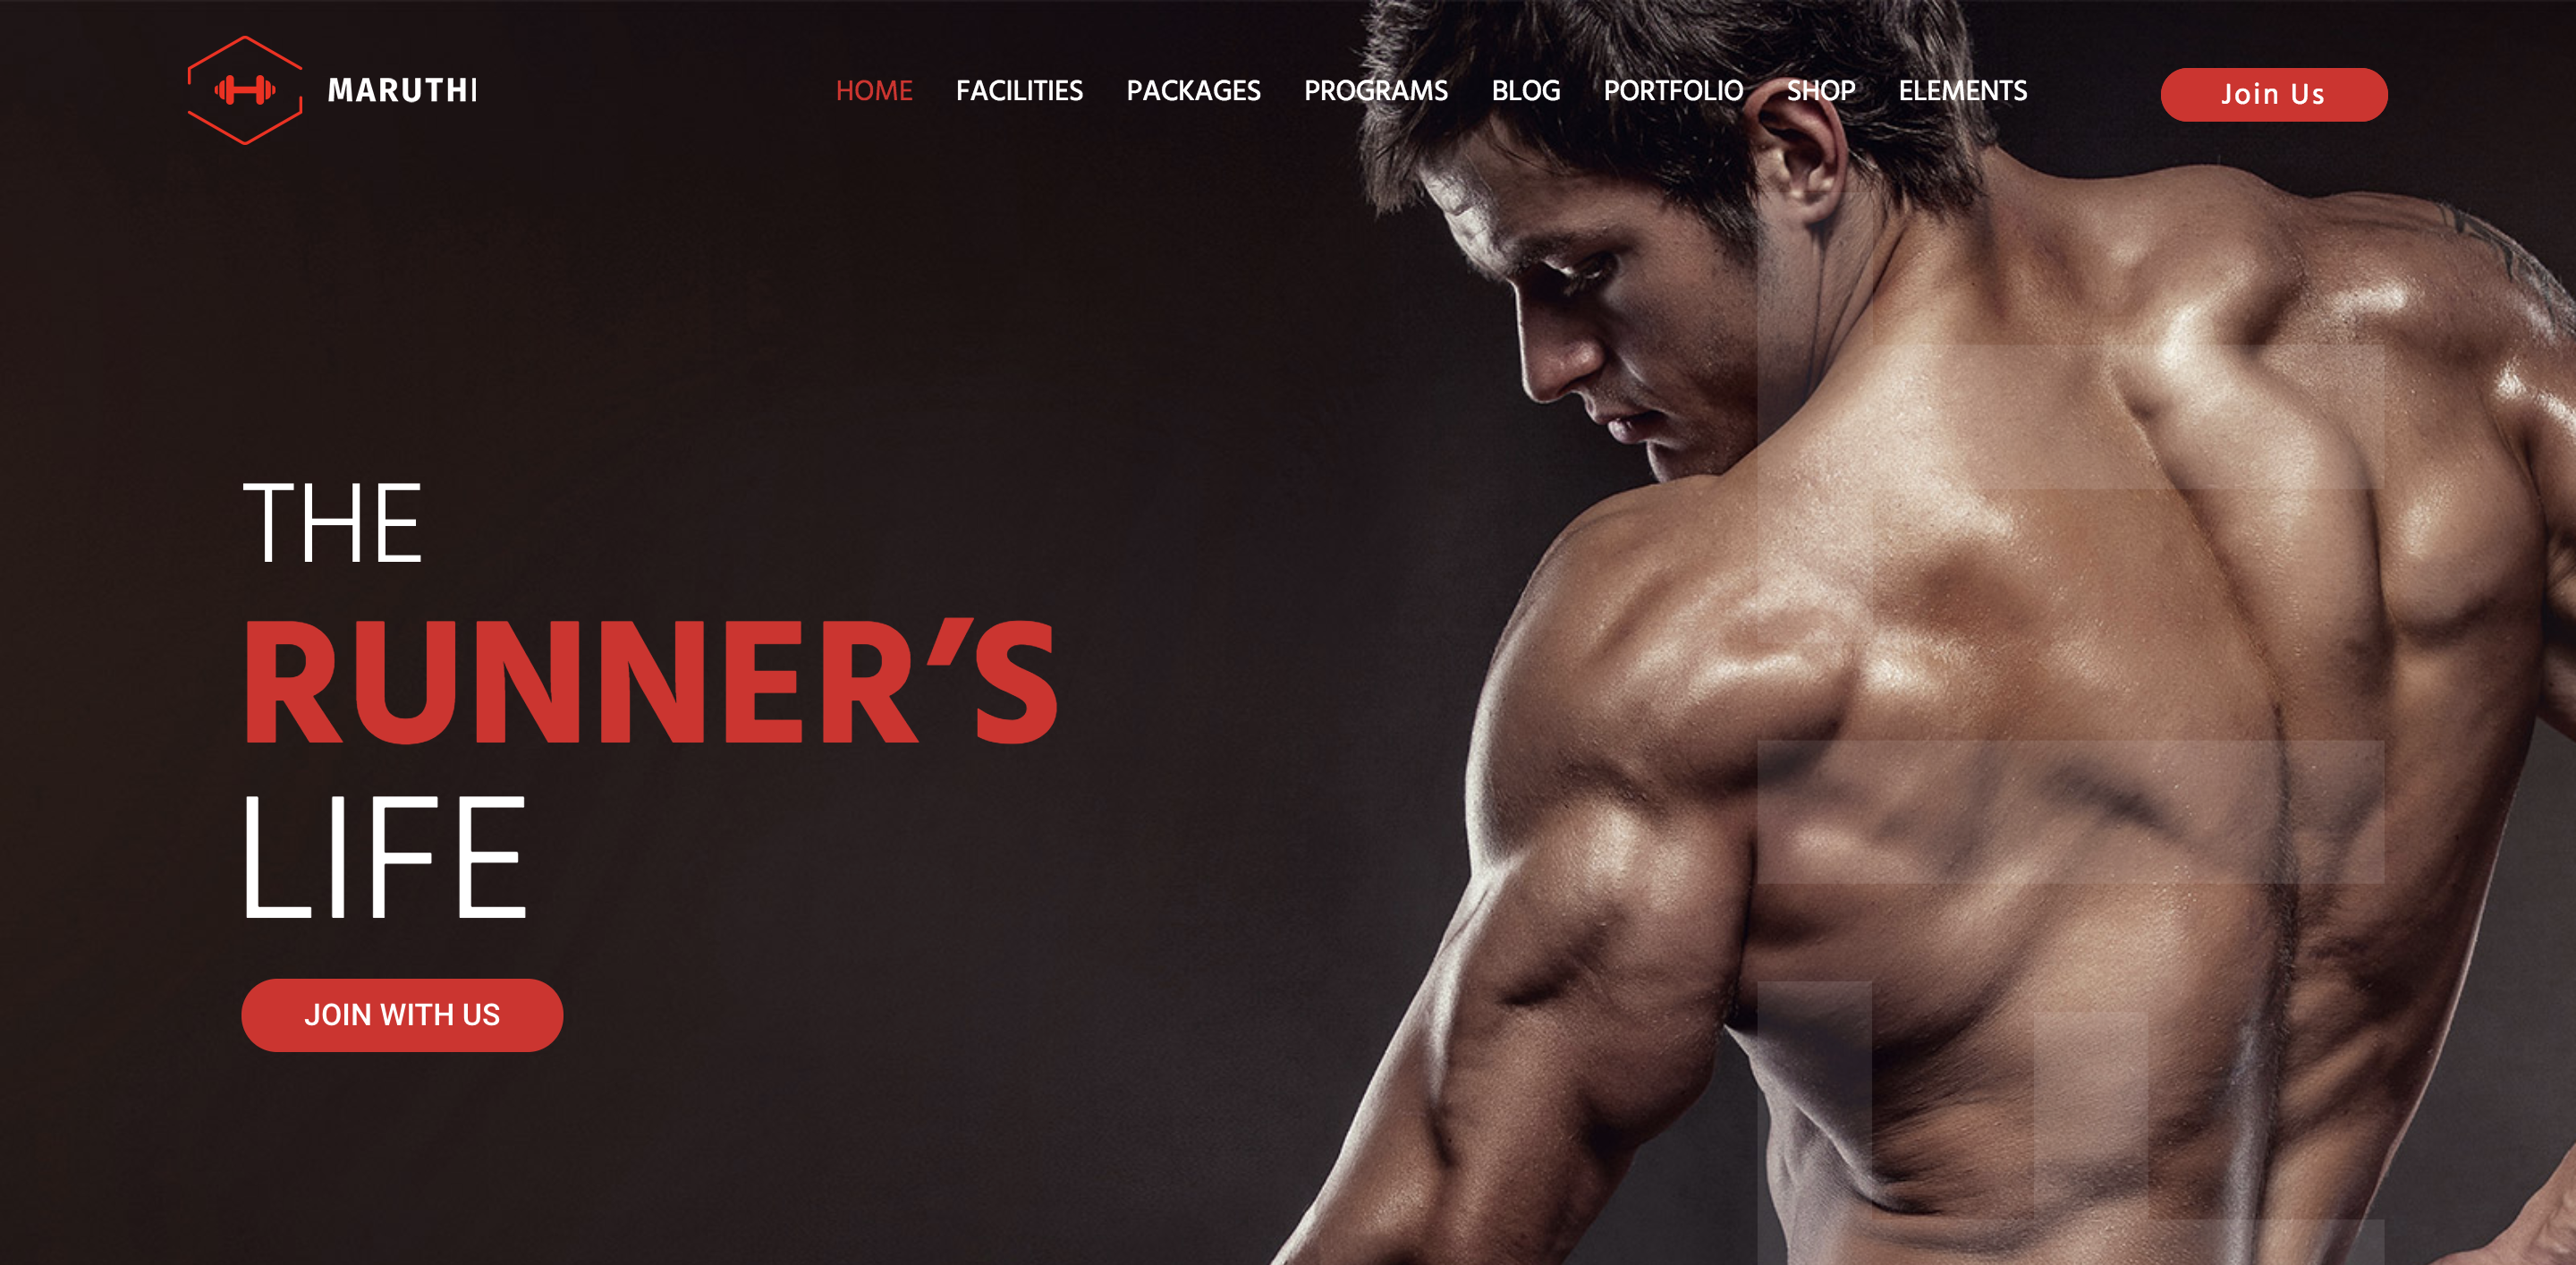 Maruthi Fitness - Fitness Center WordPress Theme.png